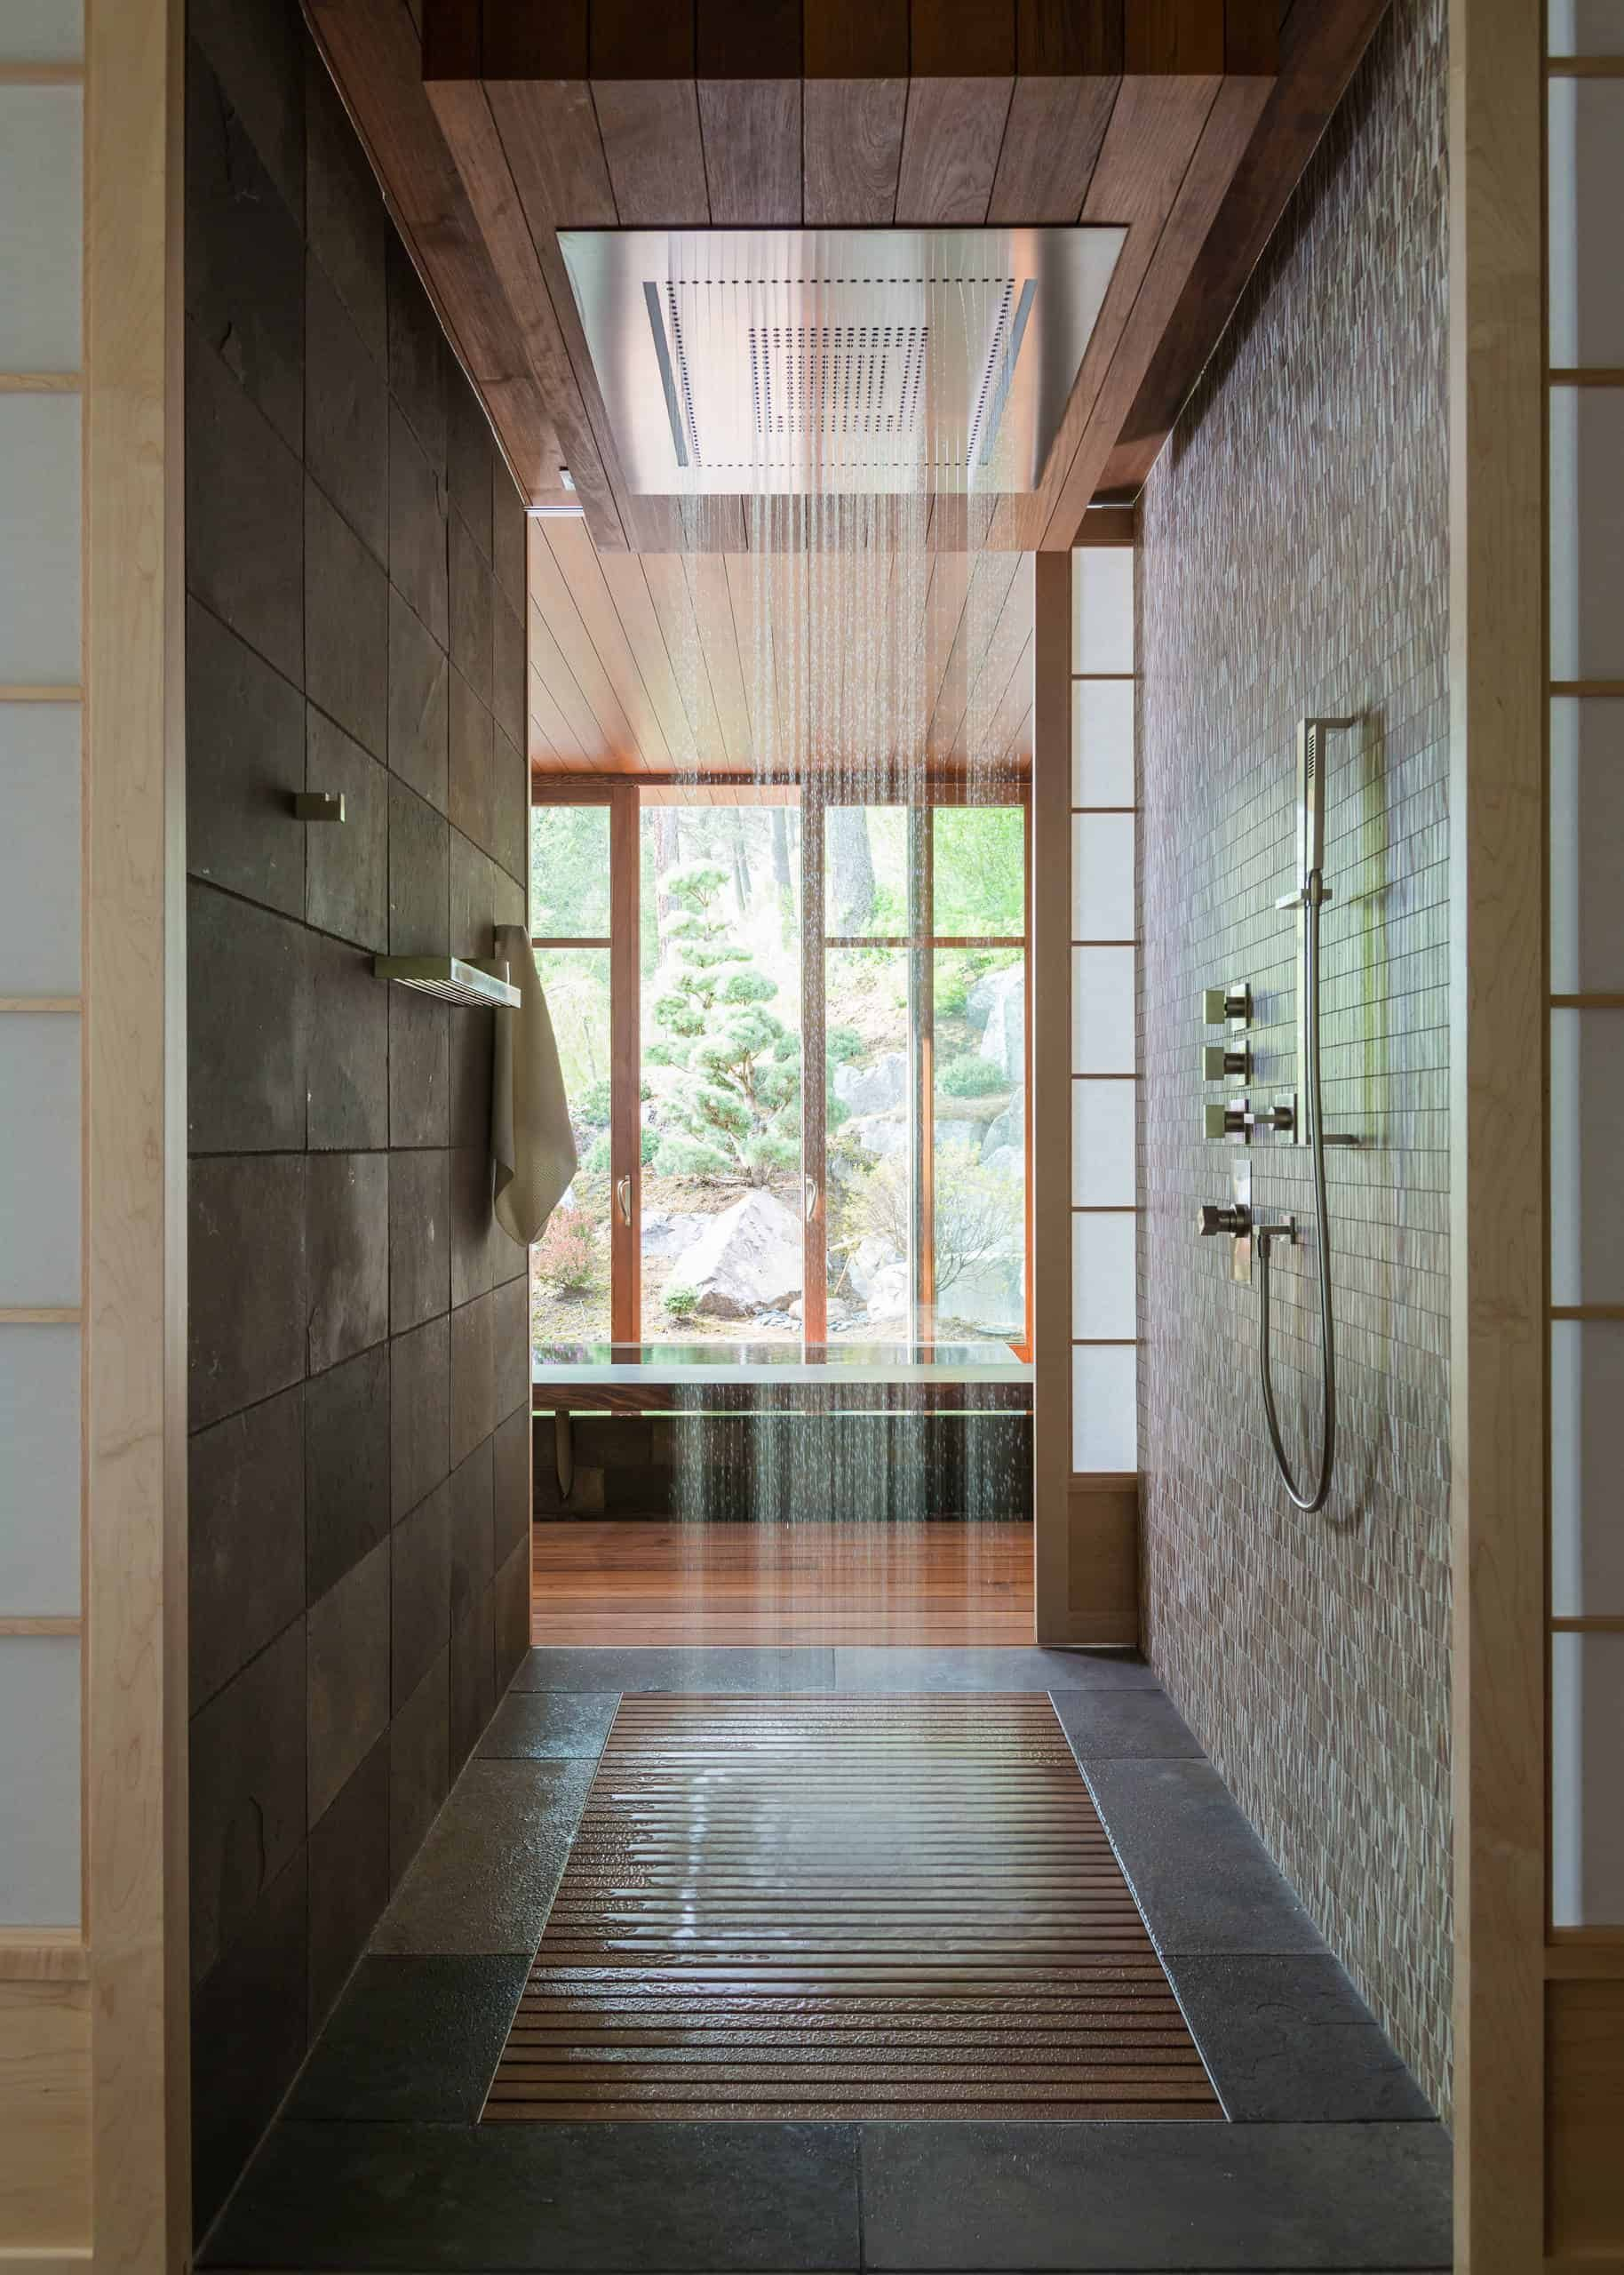 18 Modern Walk In Shower Ideas And Designs For 2021 Photos Bathroom Shower Design Showers Without Doors Shower Remodel